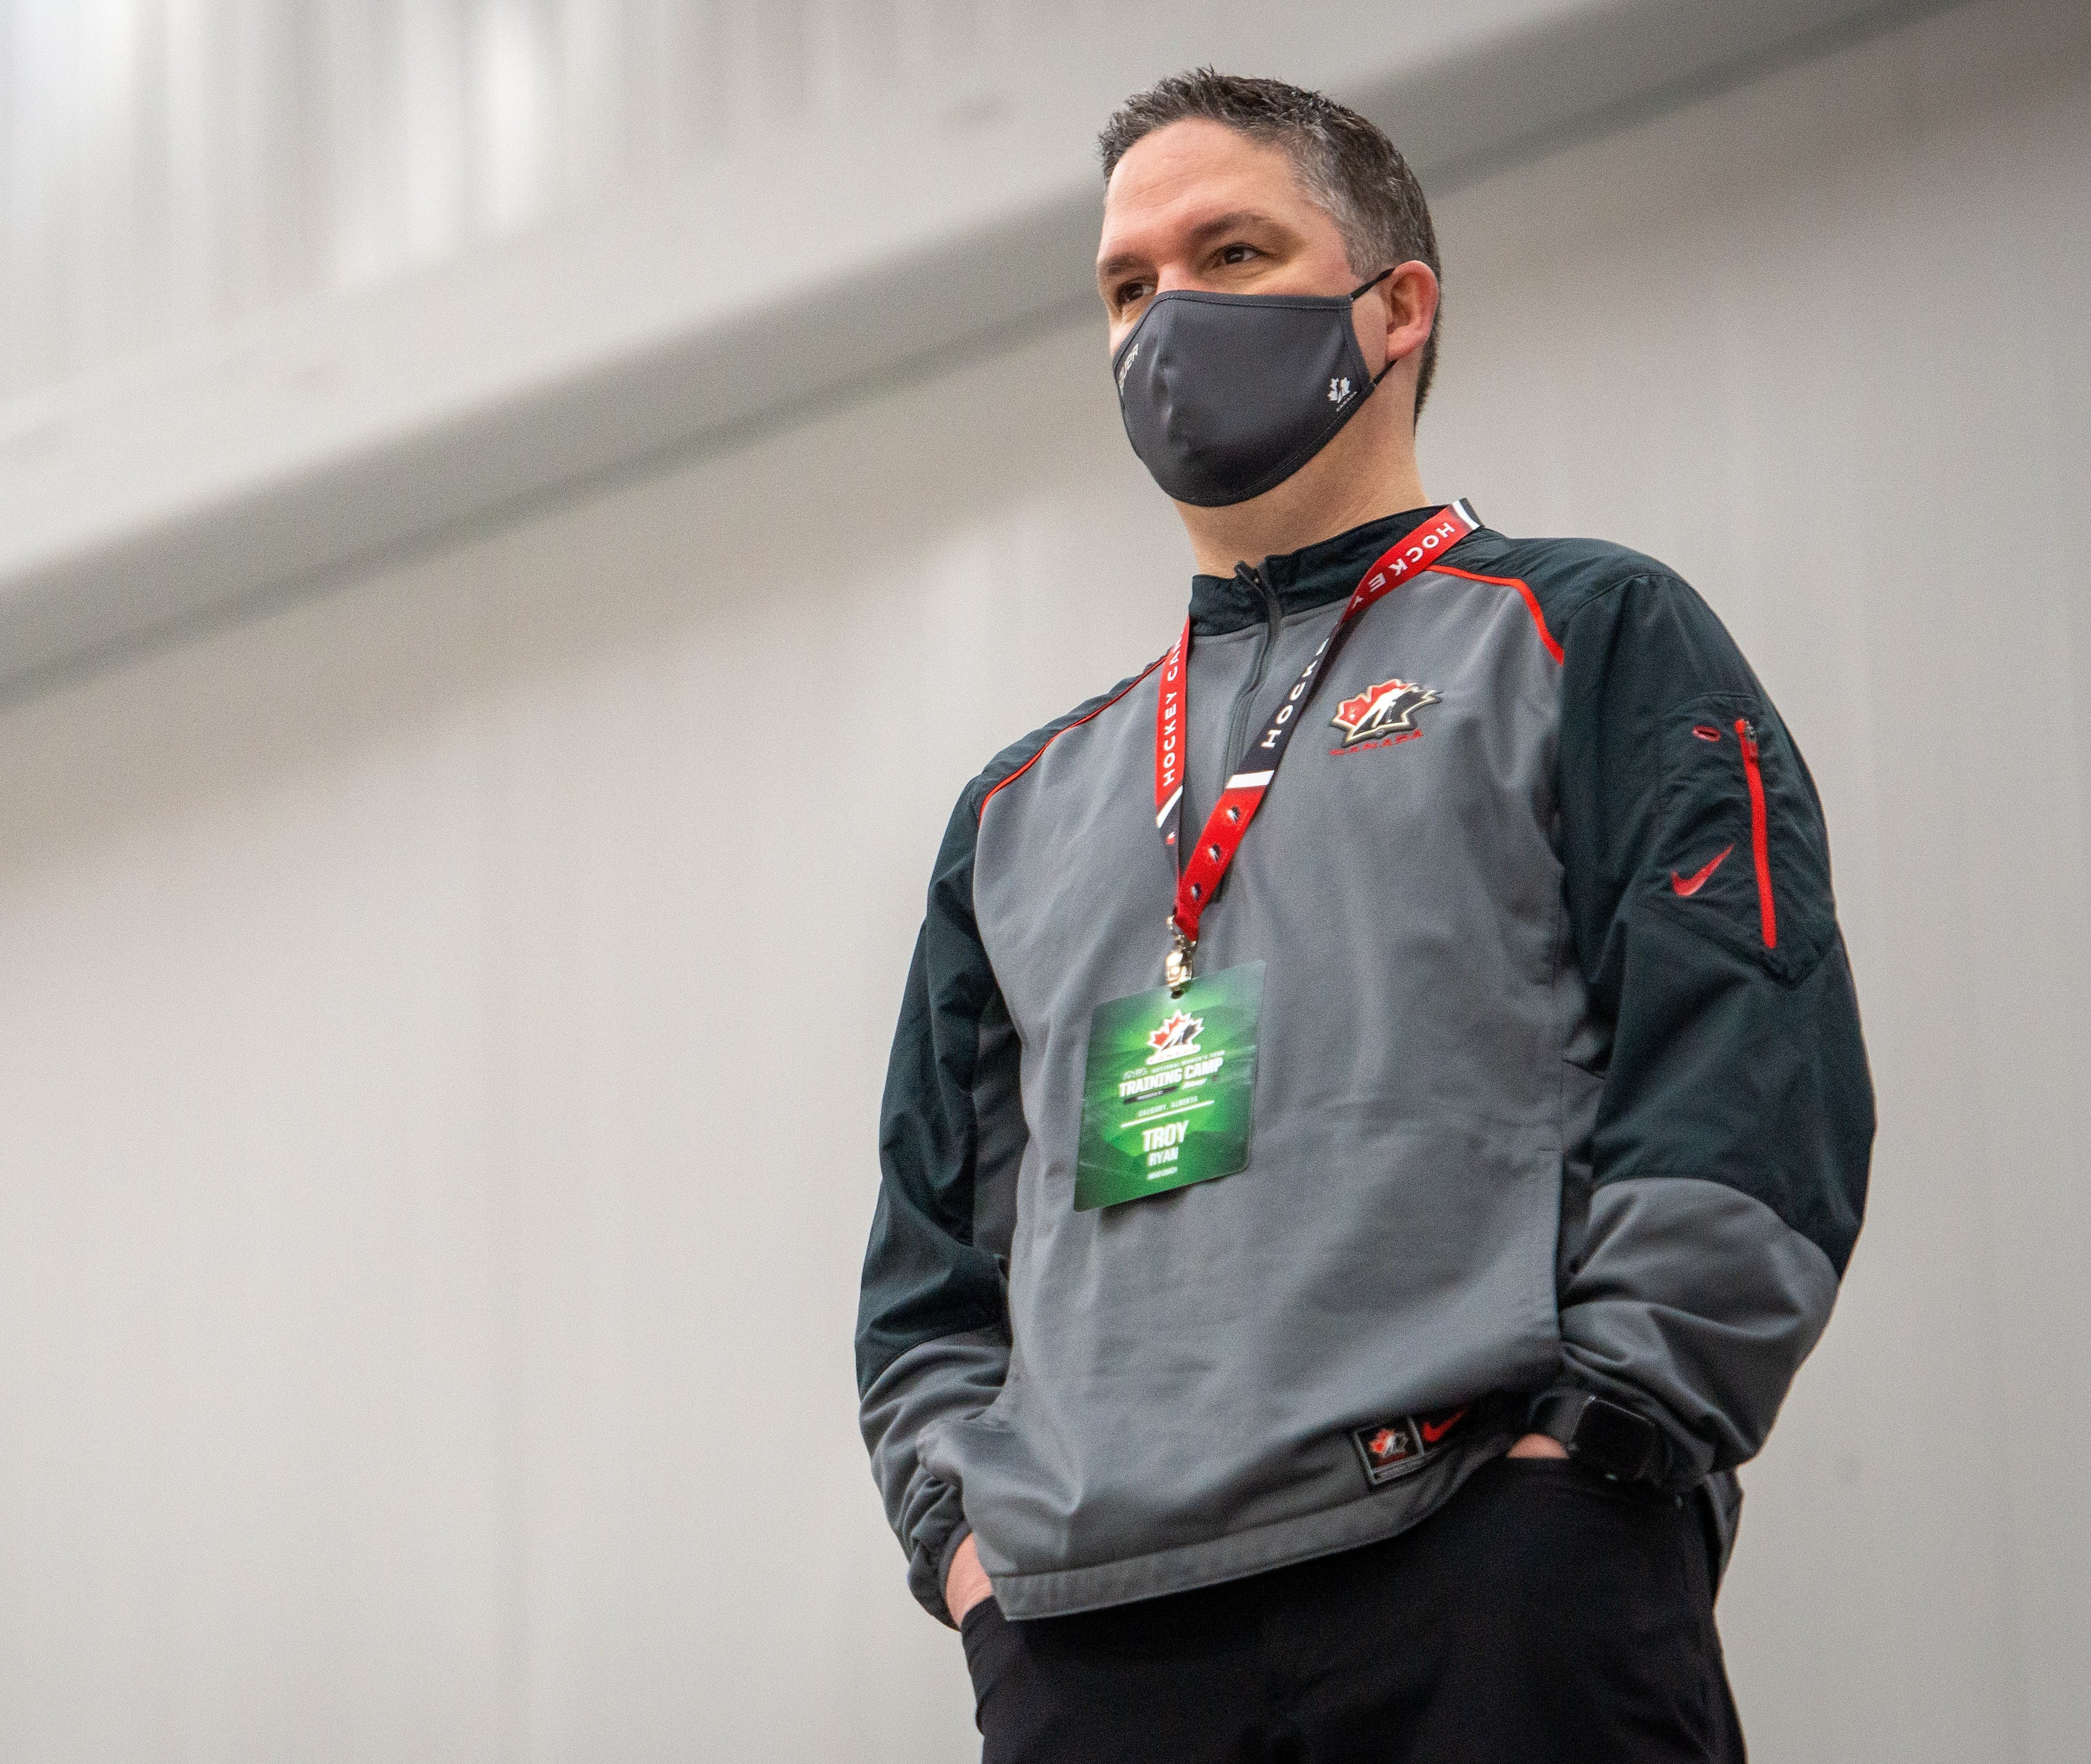 Head coach Troy Ryan of Spryfield watches practoce during a Hockey Canada's national women's team training camp at WinSport Arena in Calgary on January. - Hockey Canada